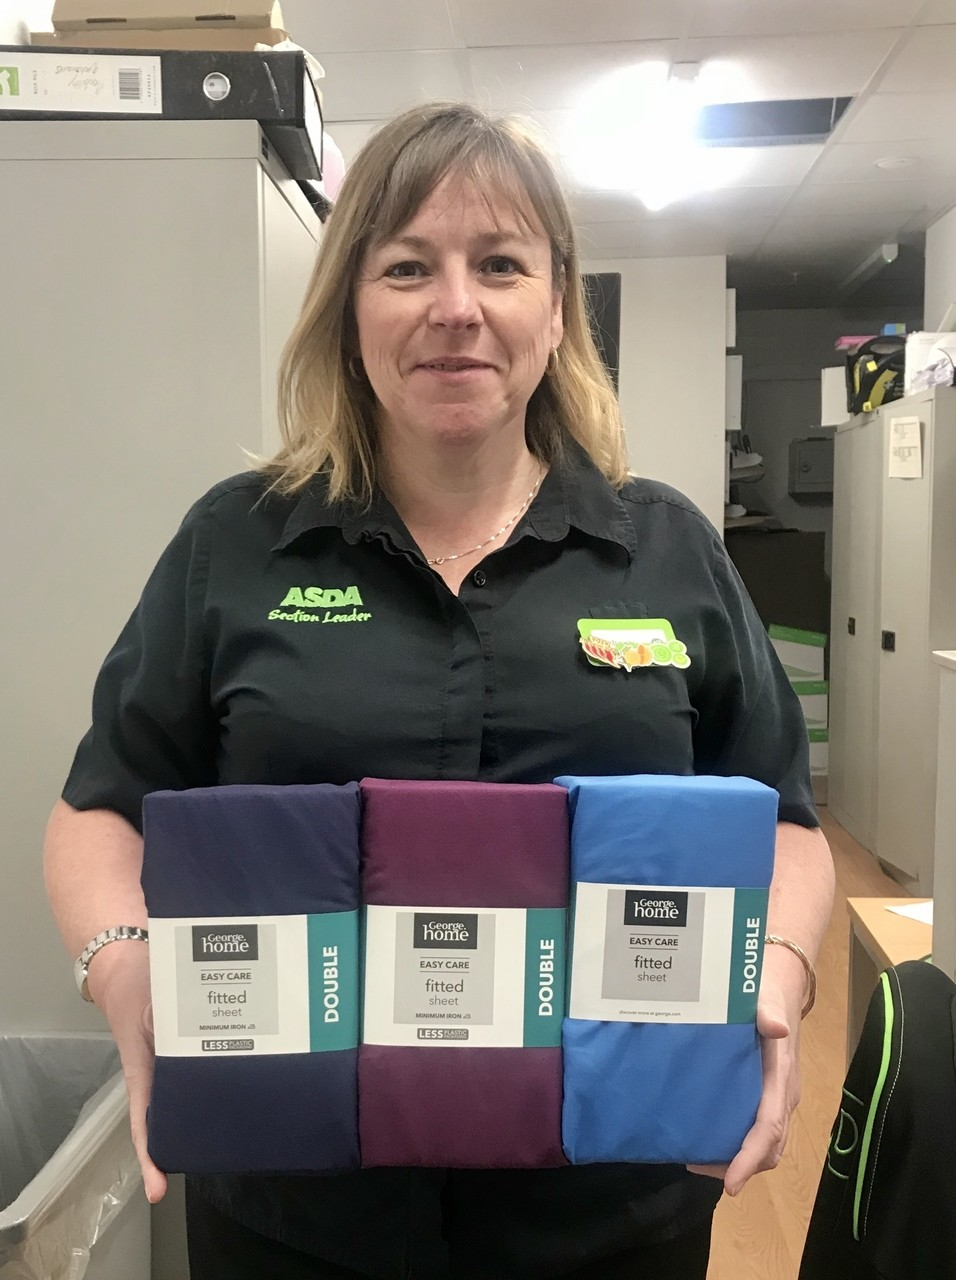 Scrubs For Frome donation | Asda Frome